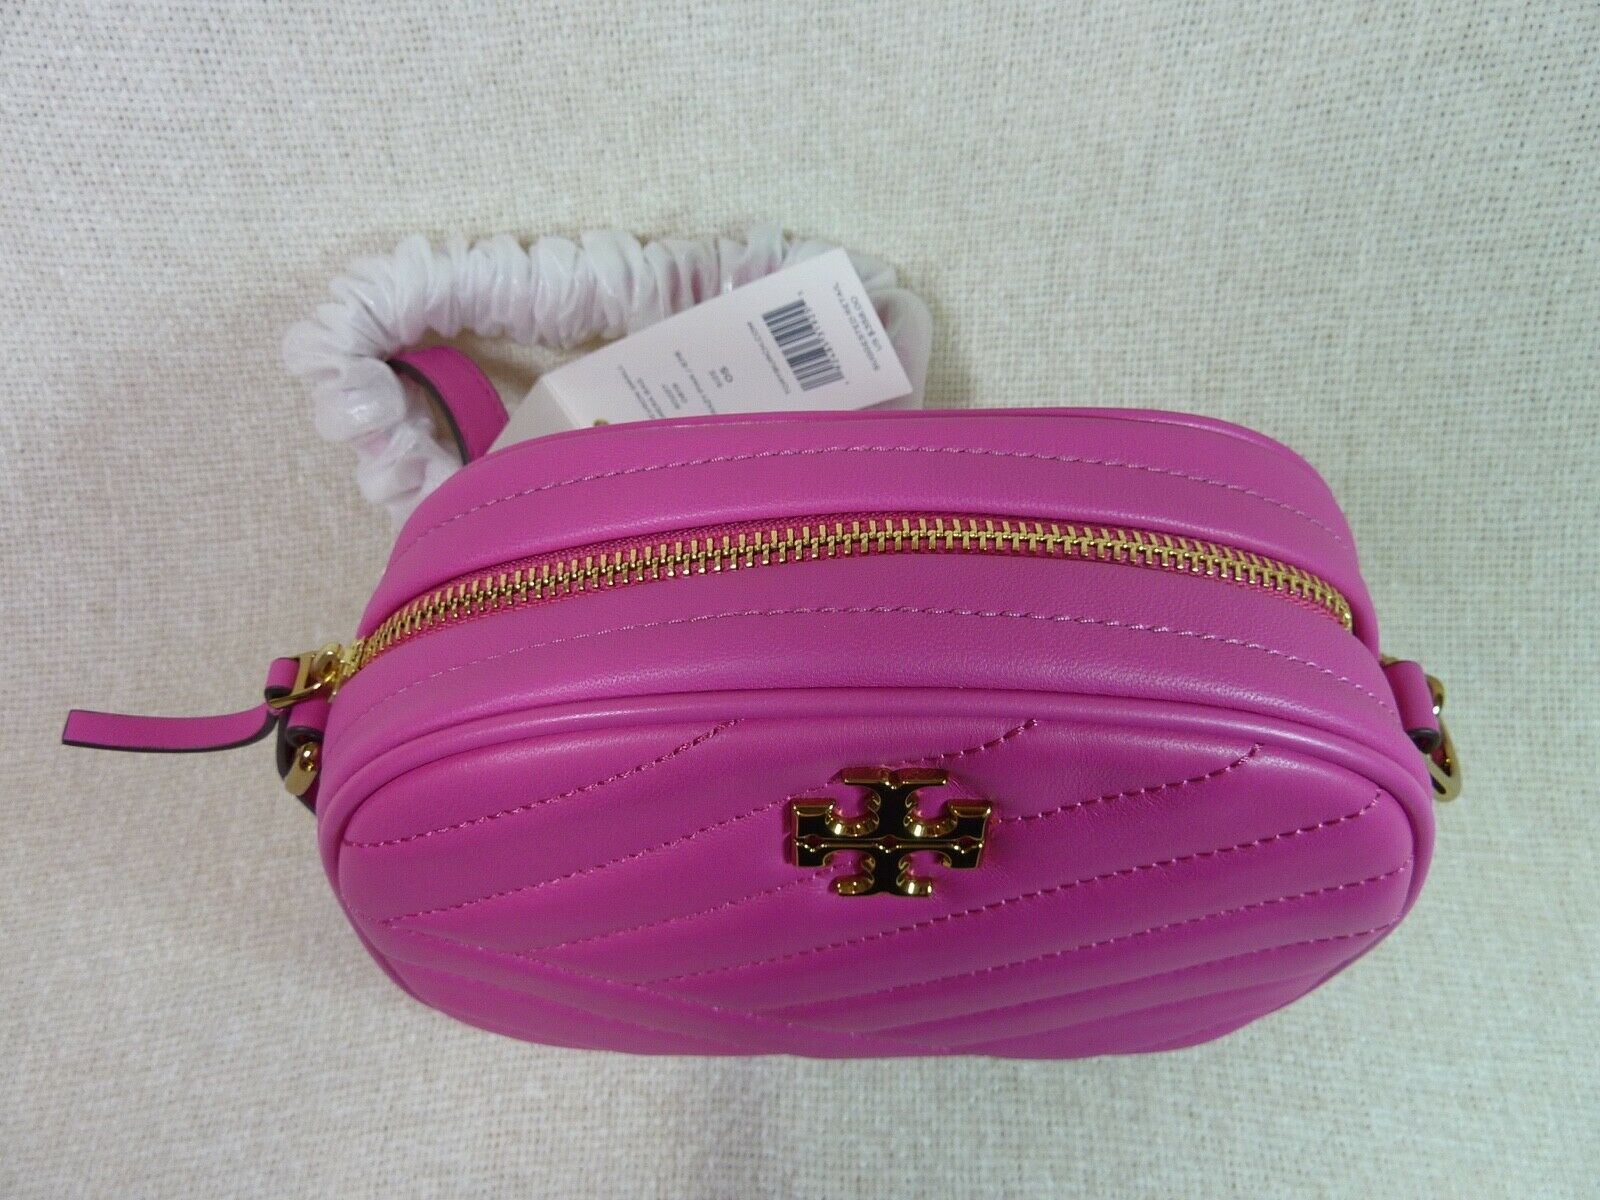 NWT Tory Burch Crazy Pink Kira Chevron Small Camera Bag $358 image 5